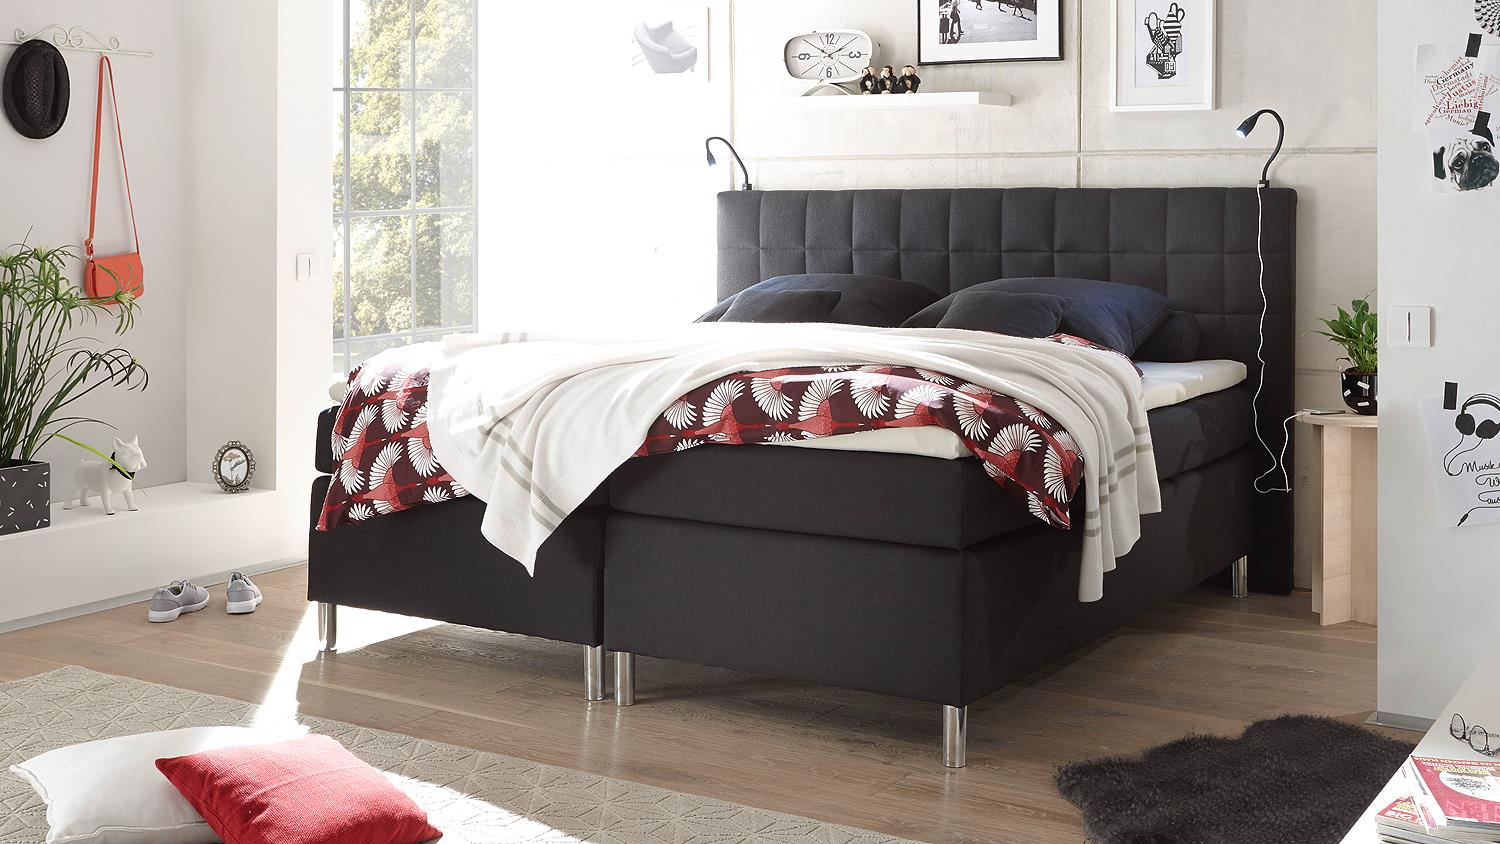 boxspringbett vitoria schlafzimmer bett in schwarz mit. Black Bedroom Furniture Sets. Home Design Ideas